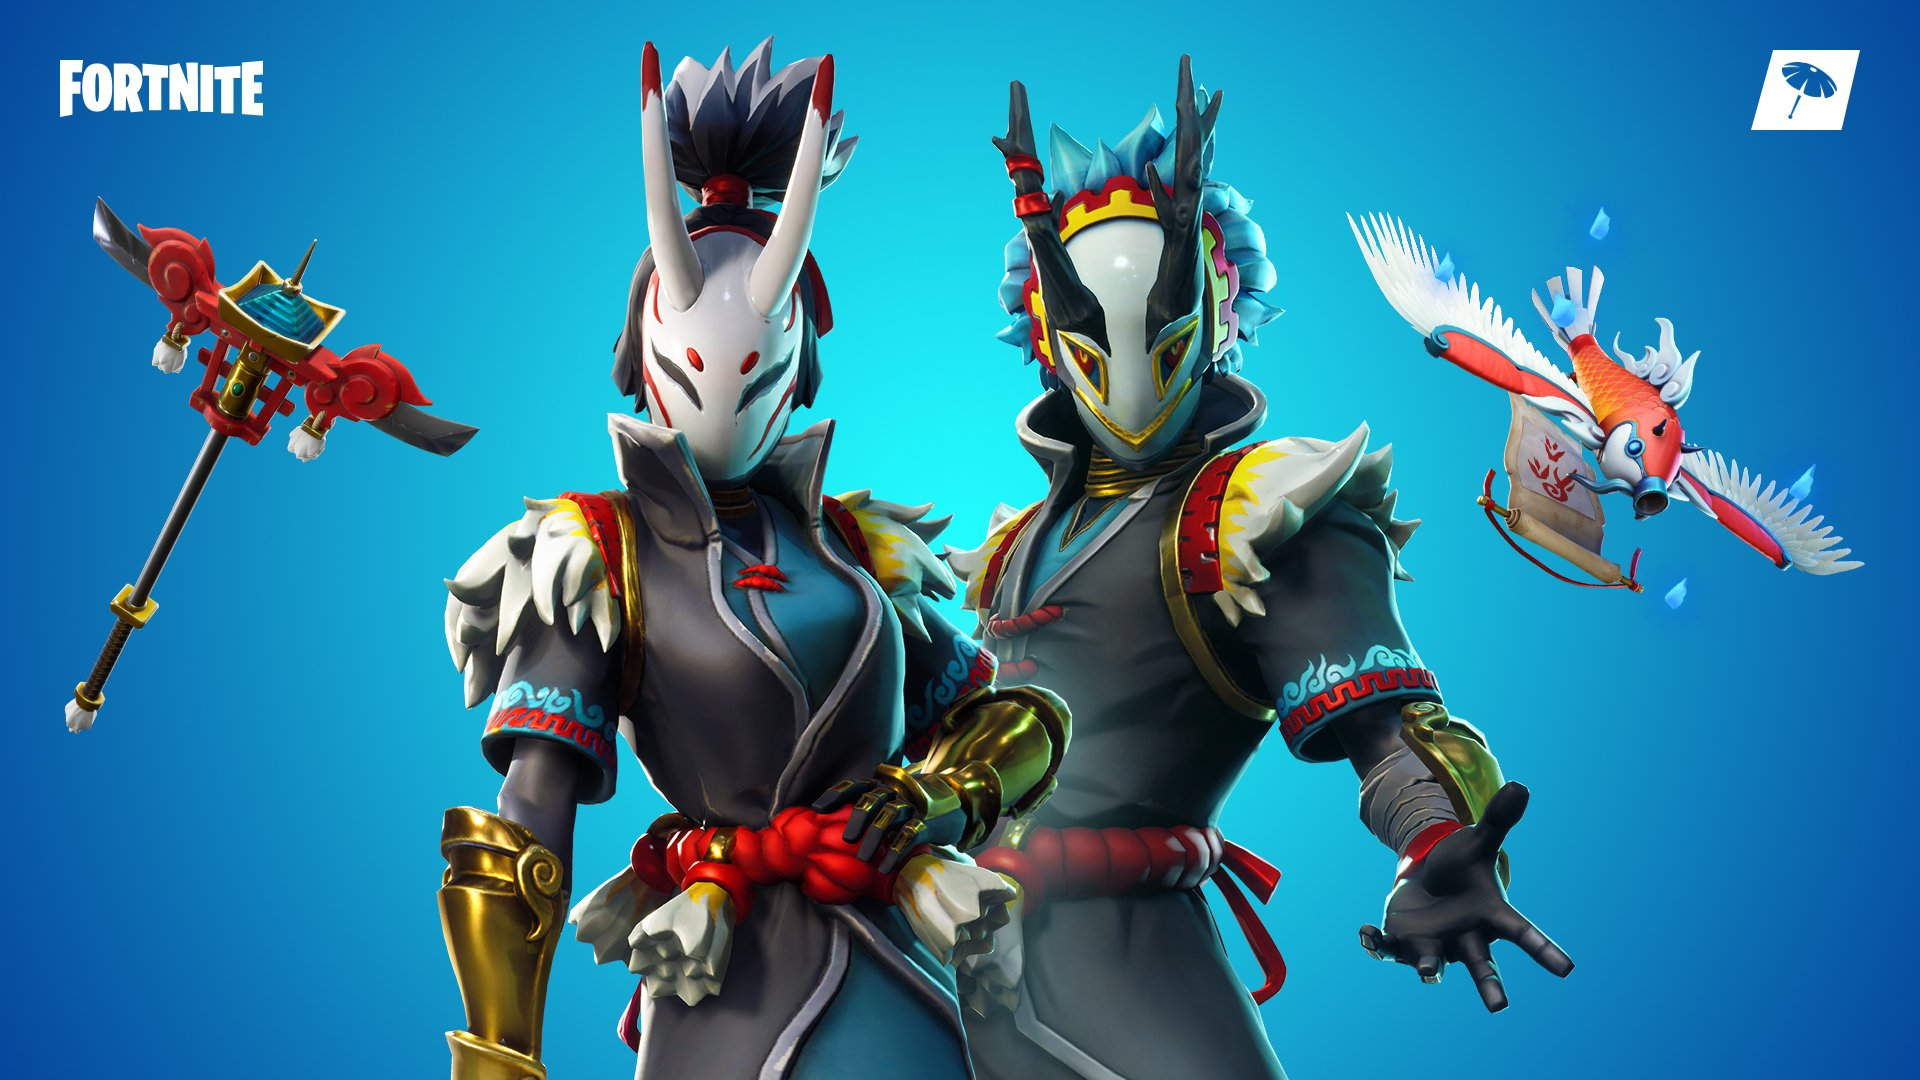 Fortnite daily Item Shop Sunday November 25th 2018 Fortnite 1920x1080